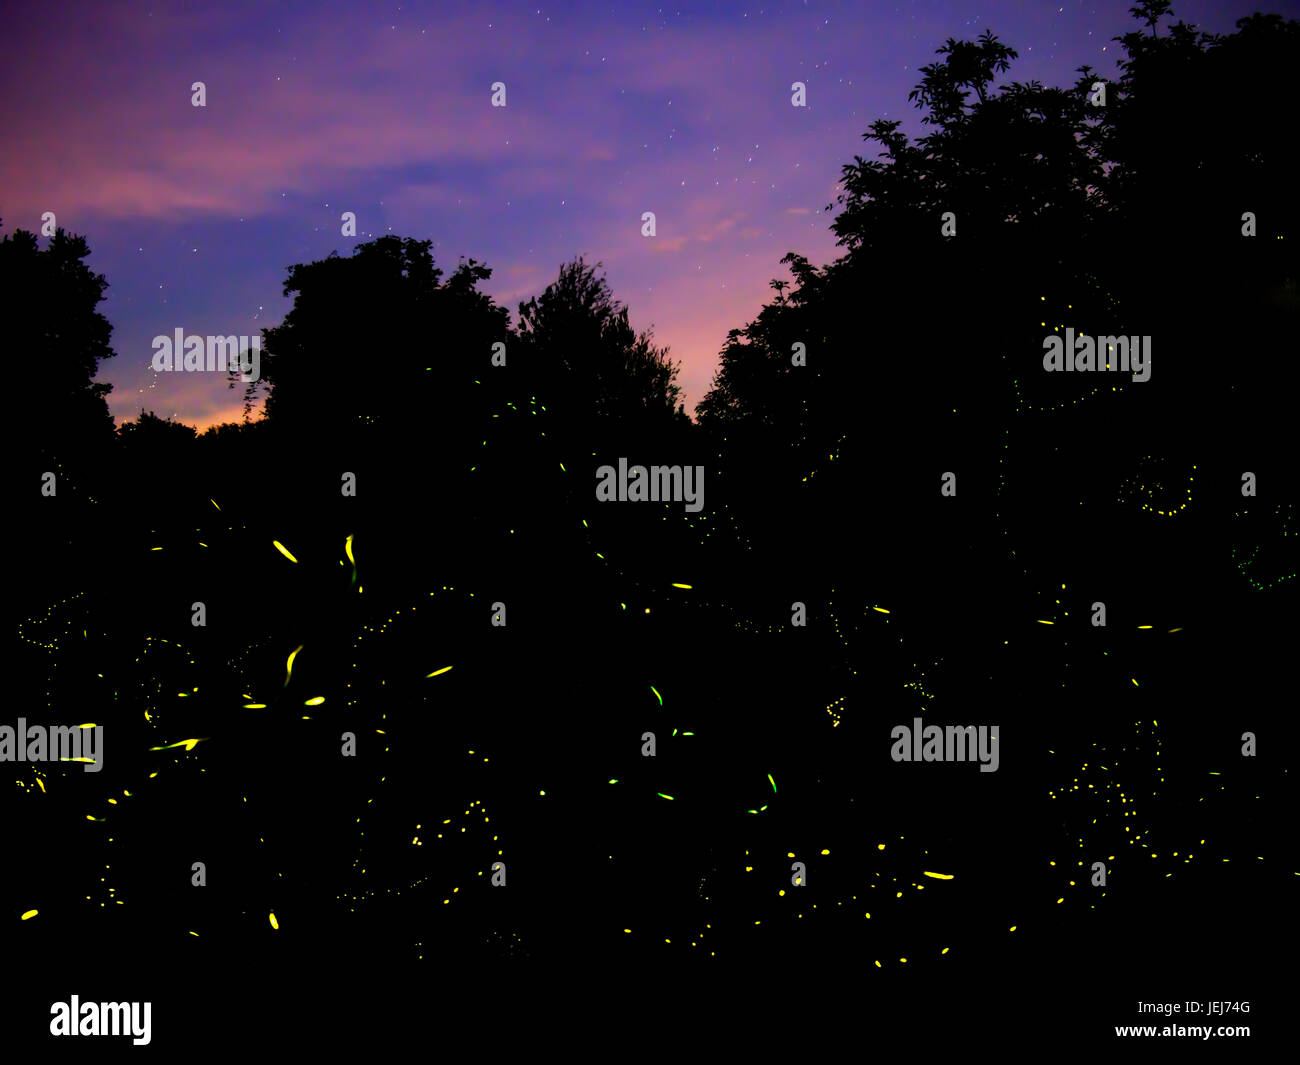 Firefly trails at night, Italy. - Stock Image